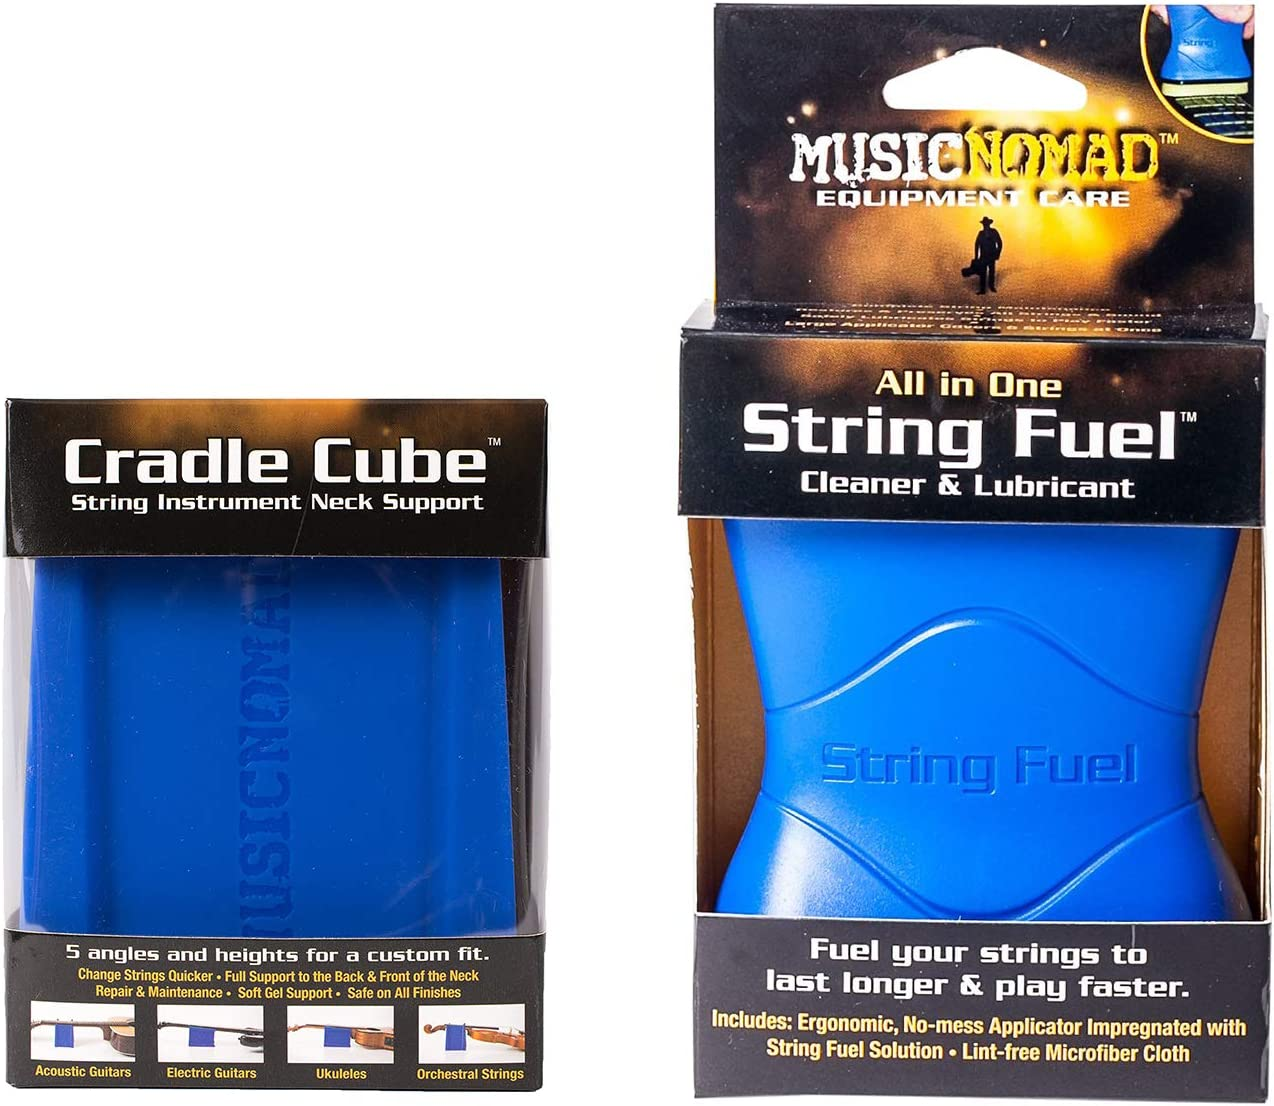 Limited Edision MN206 Cradle Cube String Instrument Neck Support